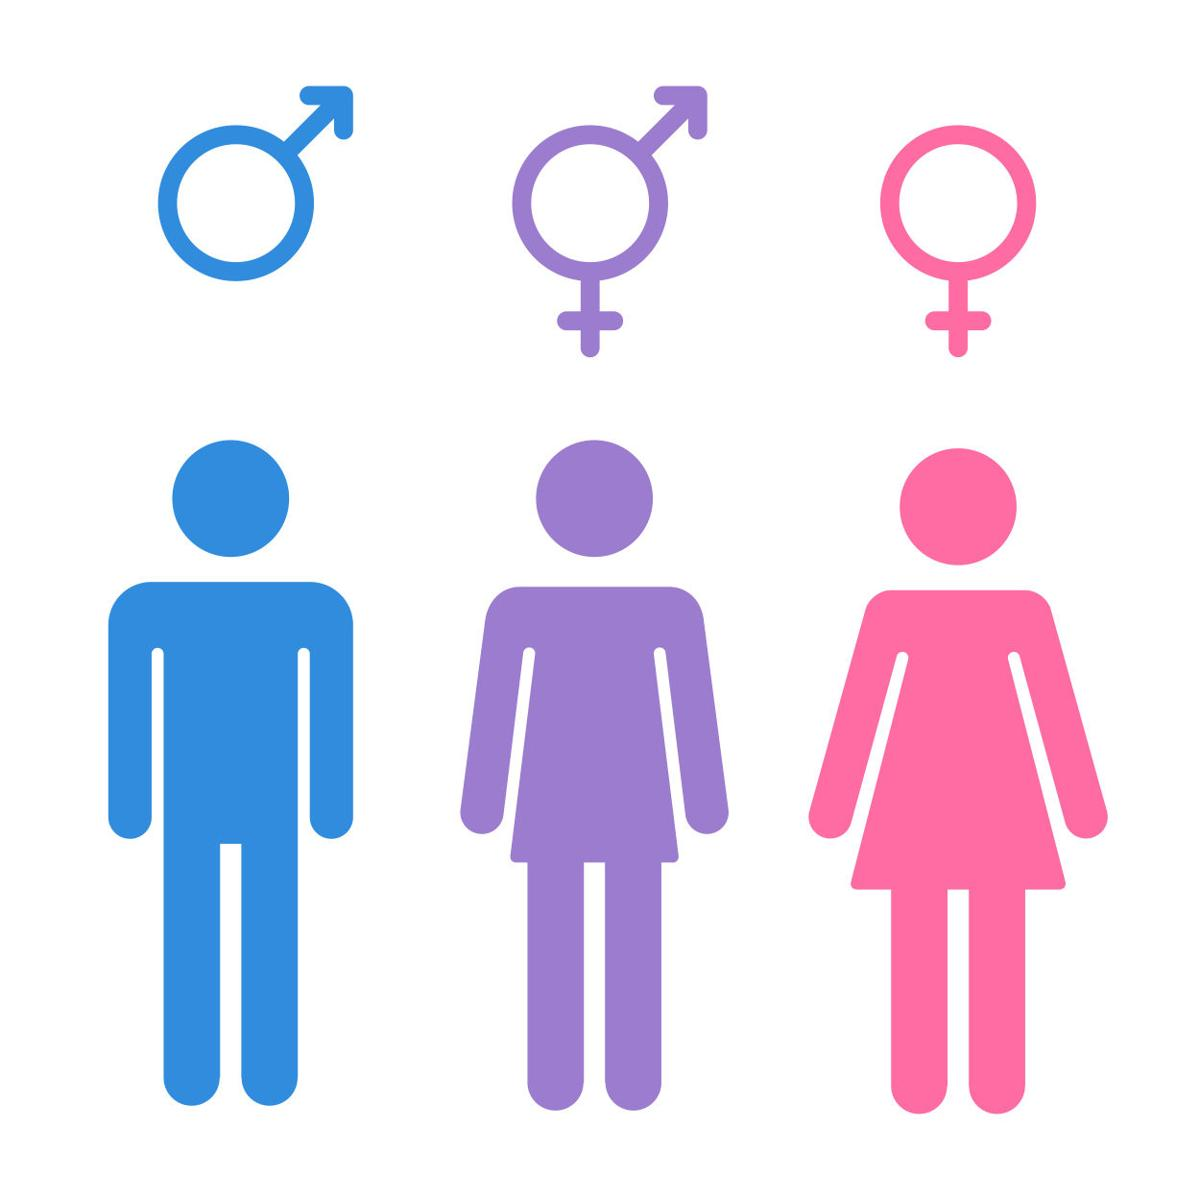 Brase unisex bathrooms are needed for society opinion set of gender symbols with stylized silhouettes male female and unisex or transgender isolated vector illustration buycottarizona